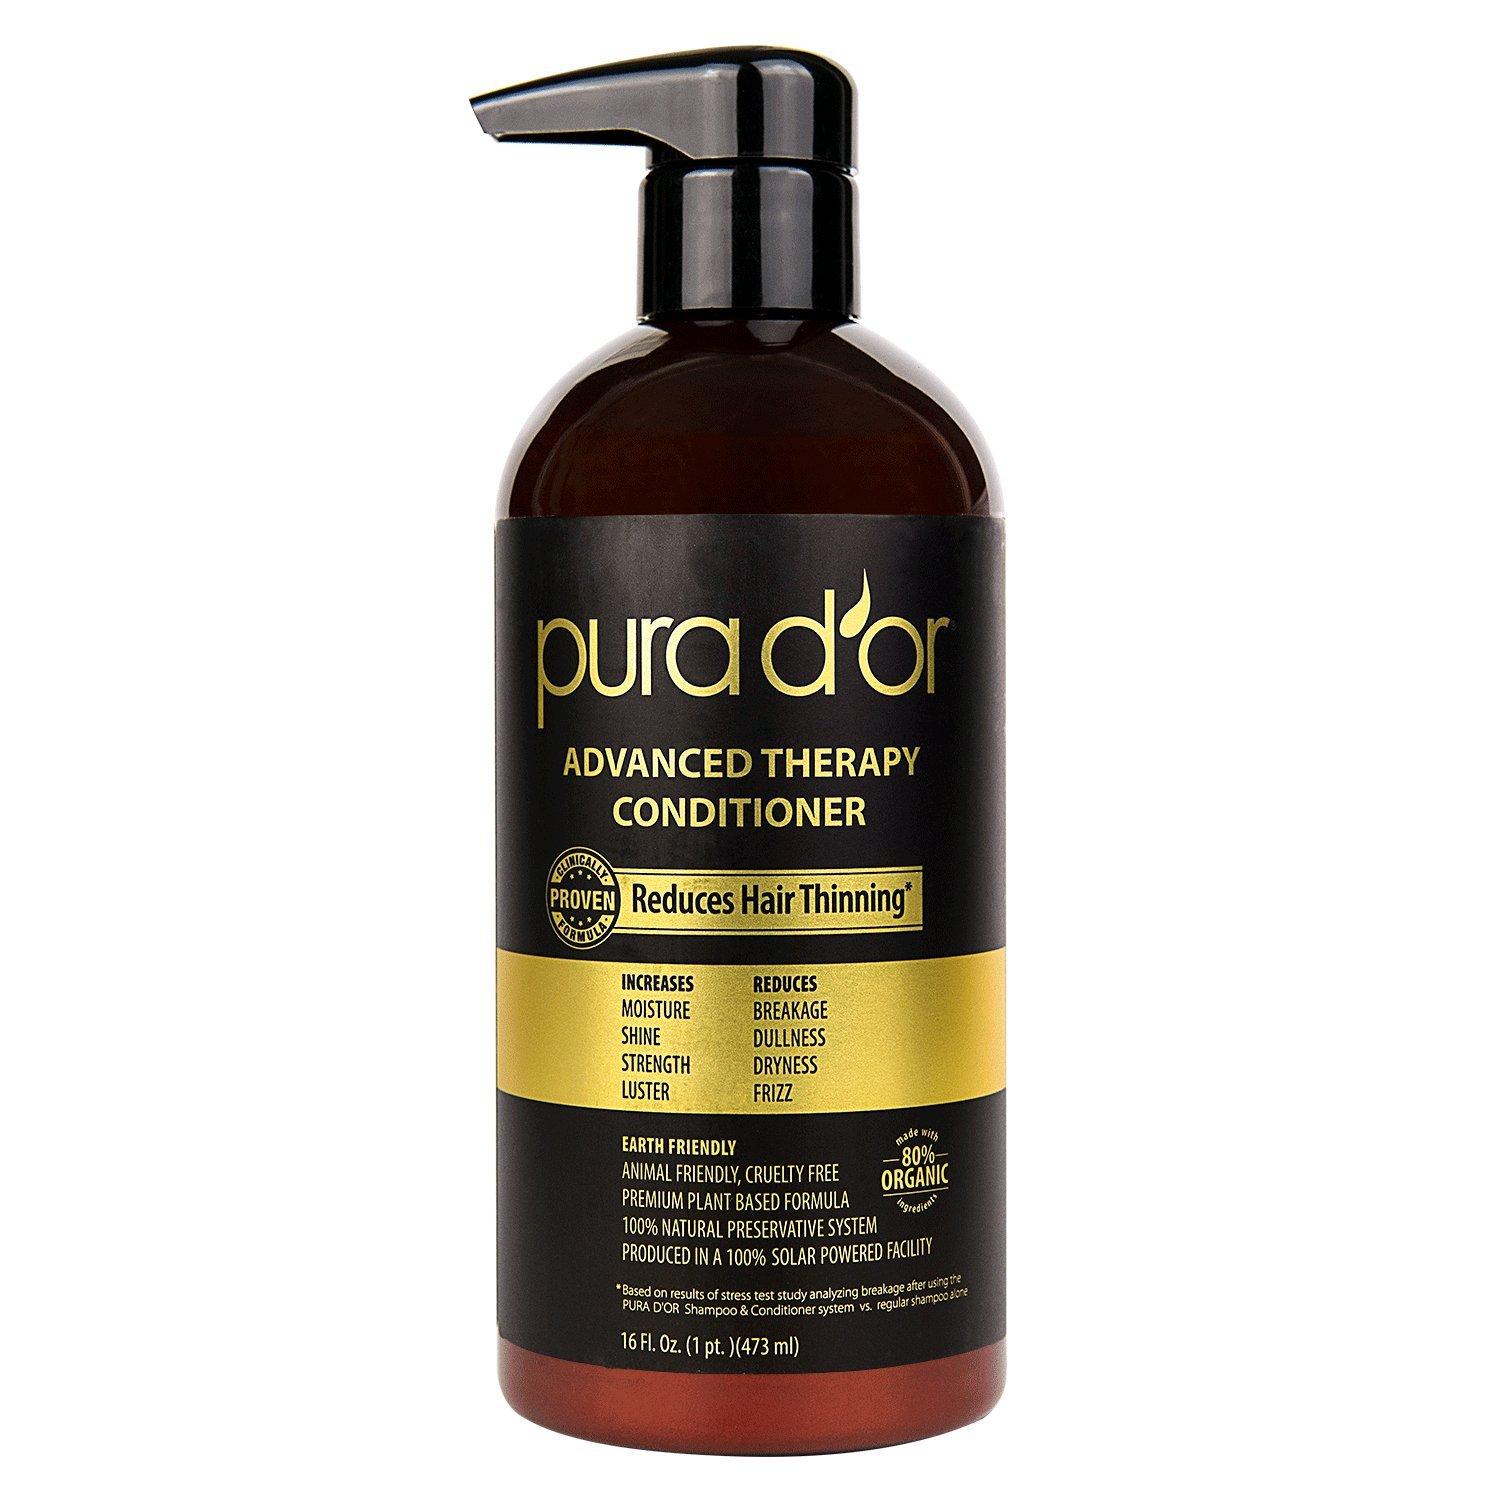 PURA D'OR Hair Loss Prevention Therapy Conditioner for natural hair growth